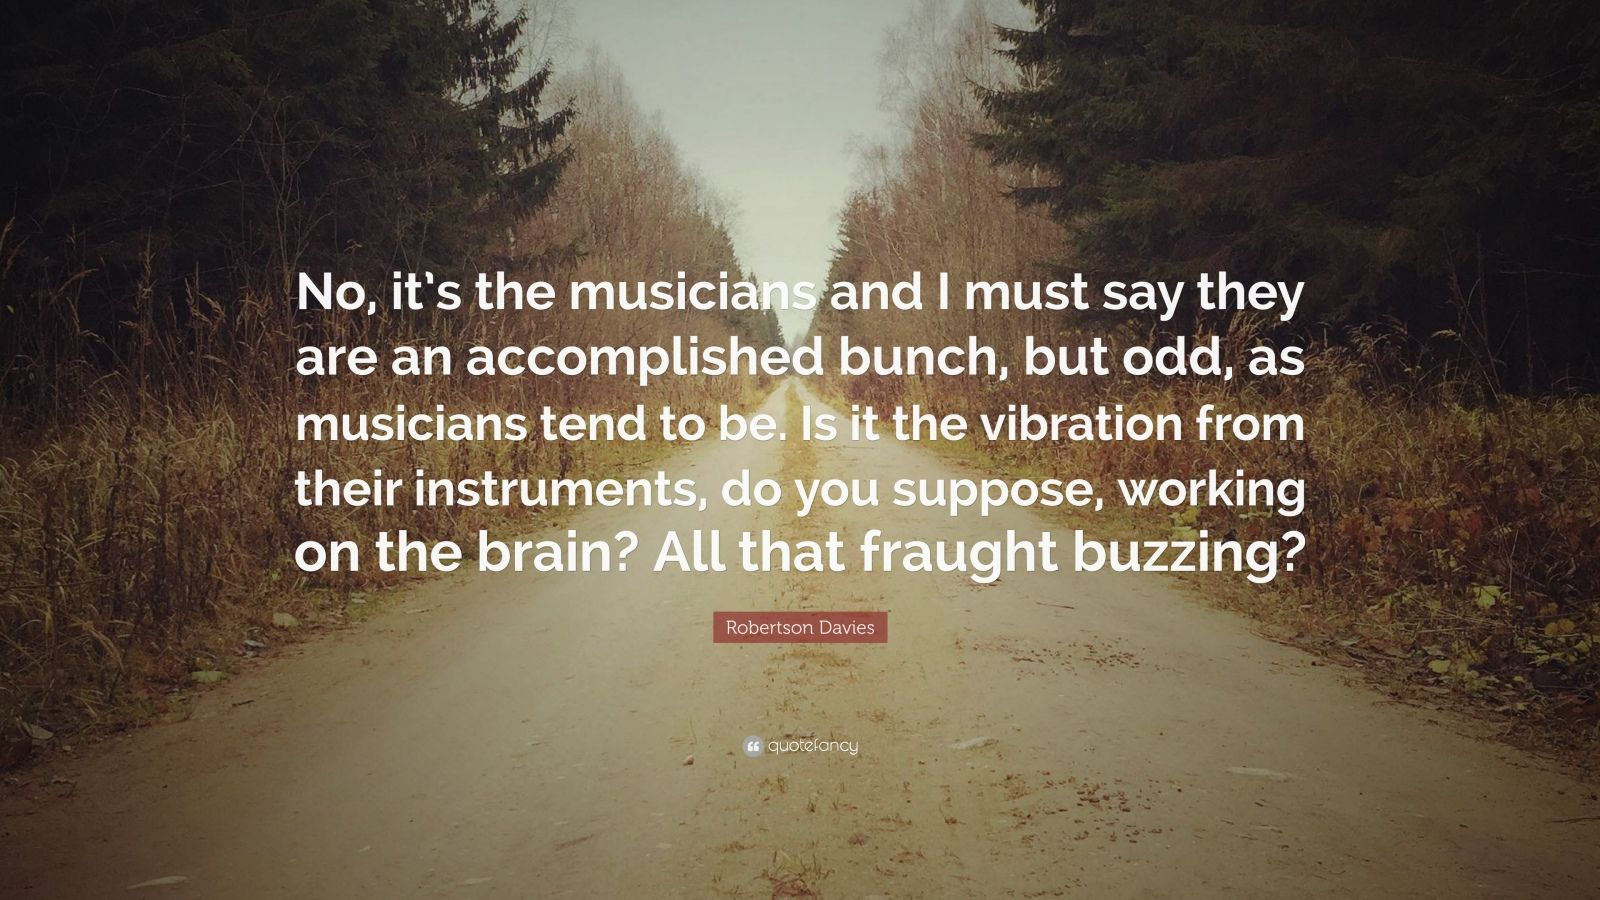 "Robertson Davies Quote: ""No, it's the musicians and I must say they are an accomplished bunch, but odd, as musicians tend to be. Is it the vibration from their instruments, do you suppose, working on the brain? All that fraught buzzing?"""